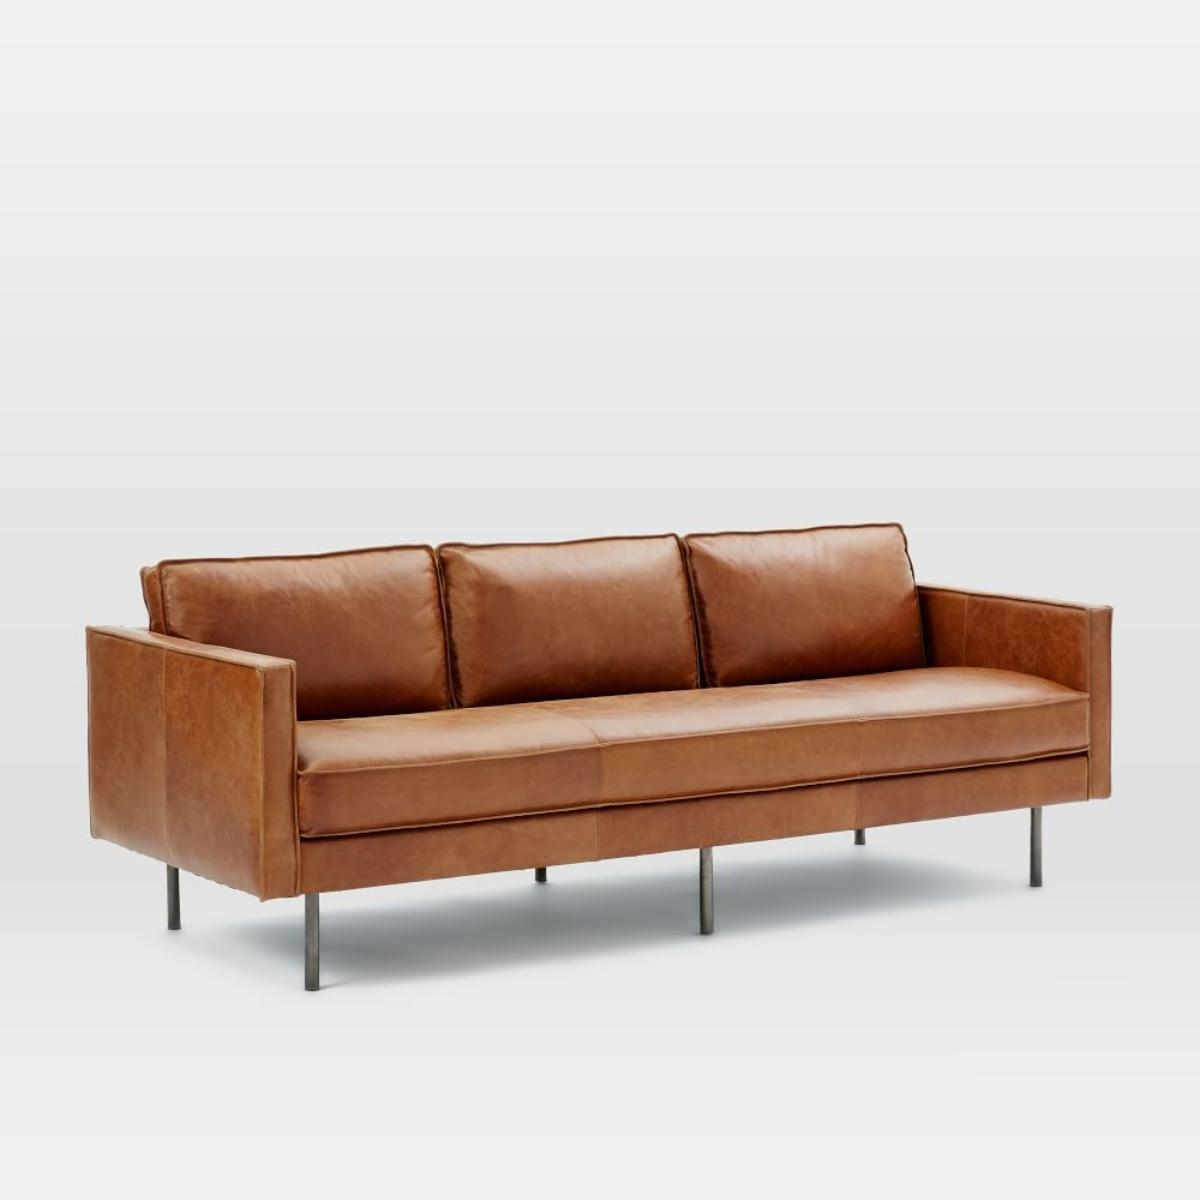 Leather Sofas 29 With Leather Sofas | Jinanhongyu With Leather Sofas (Image 17 of 21)